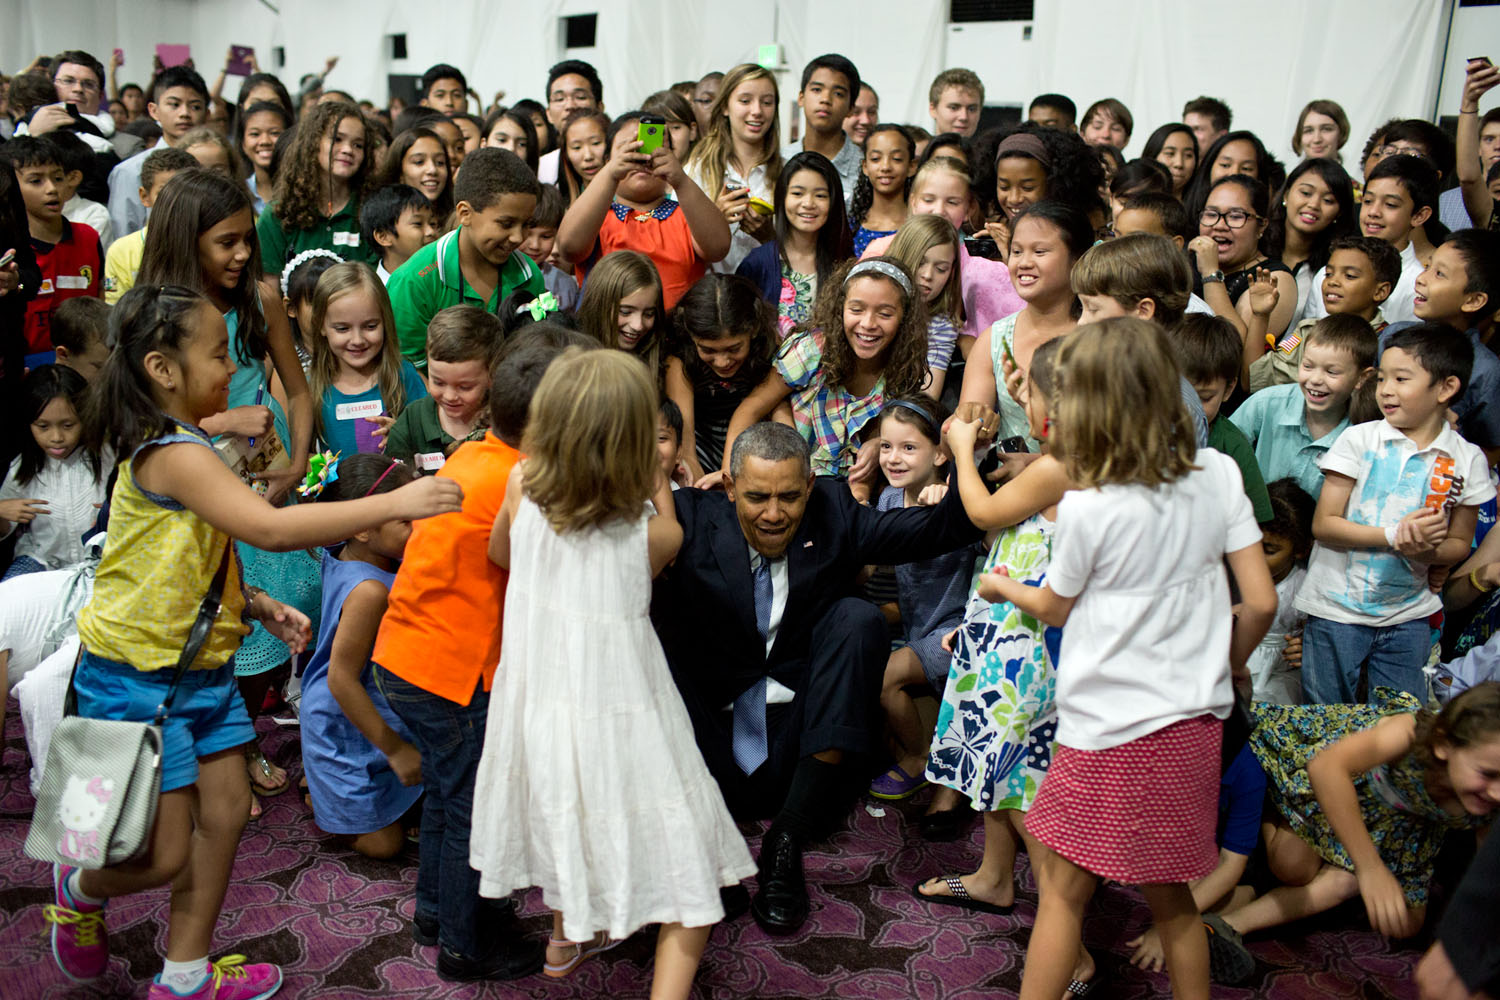 Students help the president up after posing for a photograph at the U.S. Embassy in Manila, the Philippines. Official White House photo by Pete Souza.